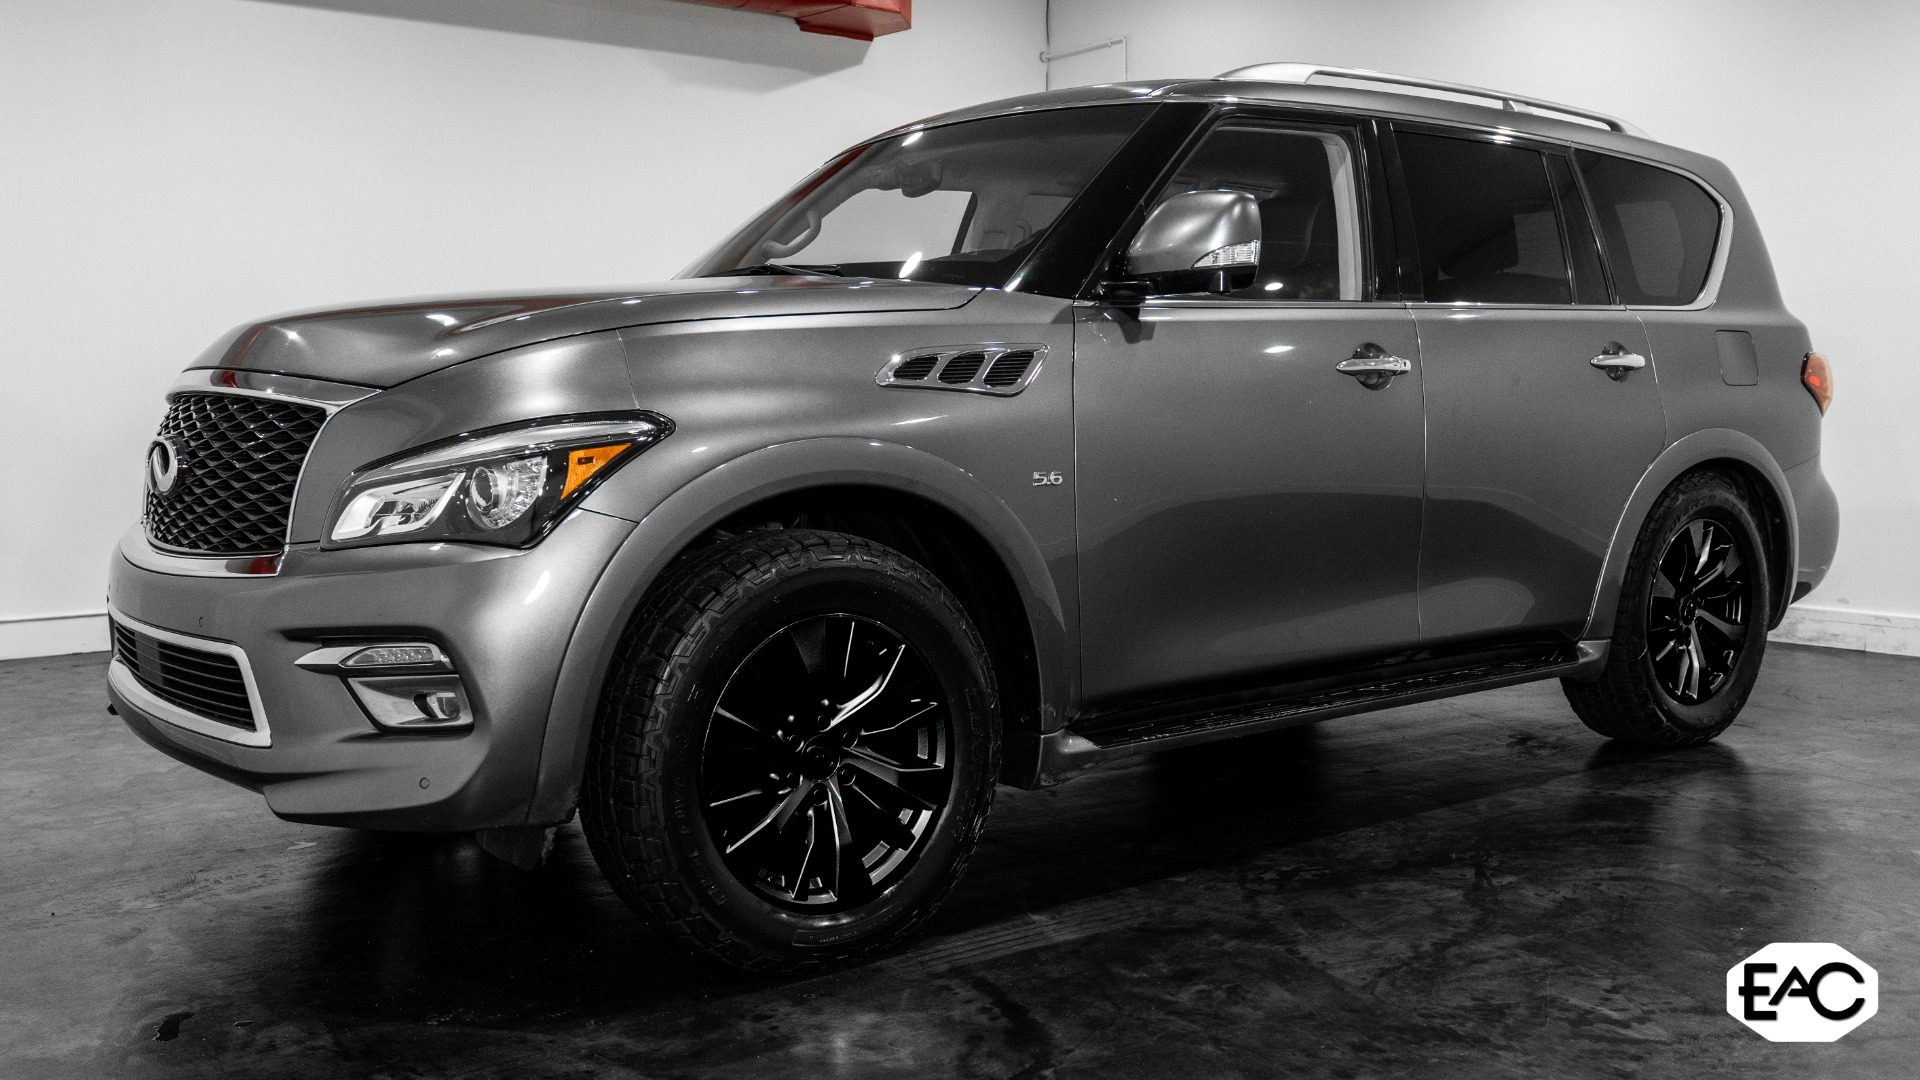 Used 2016 INFINITI QX80 AWD 5.6 V8 for sale $27,490 at Empire Auto Collection in Warren MI 48091 1